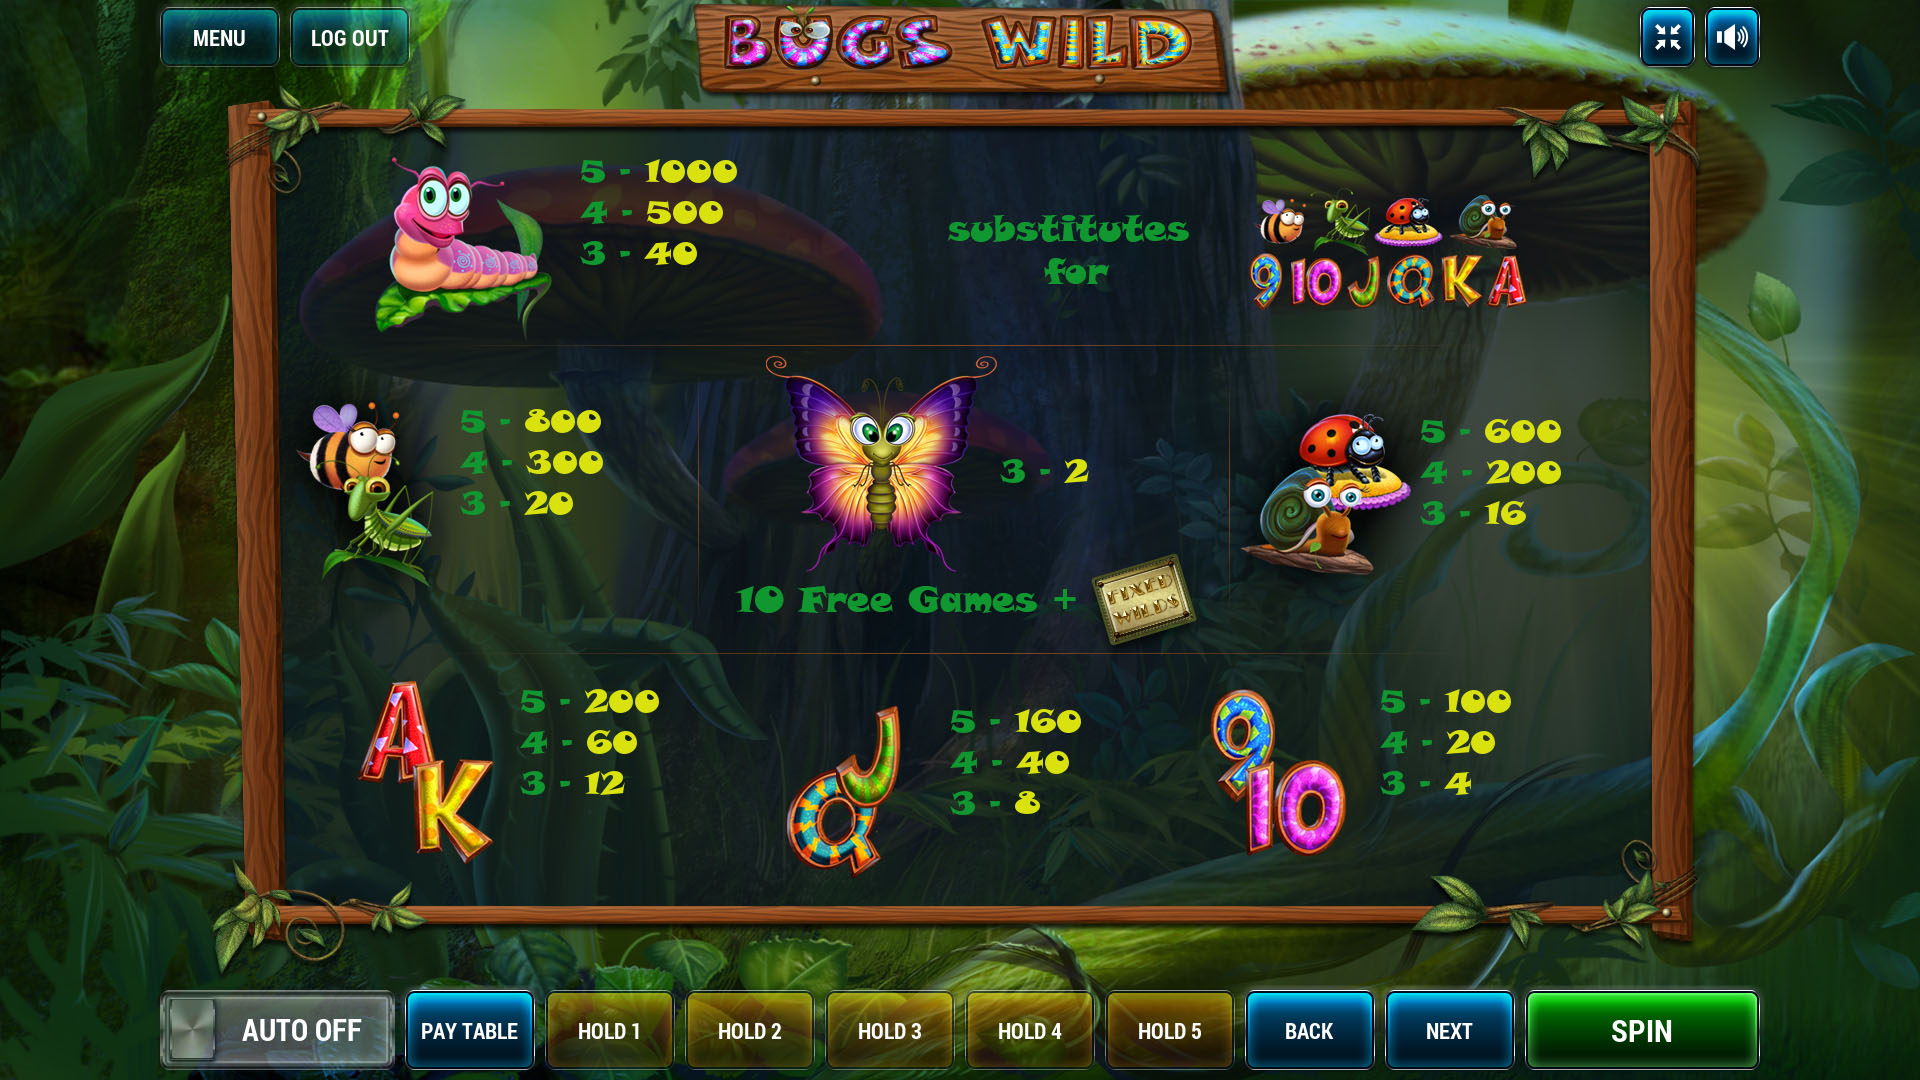 Bugs Wild screenshot 3